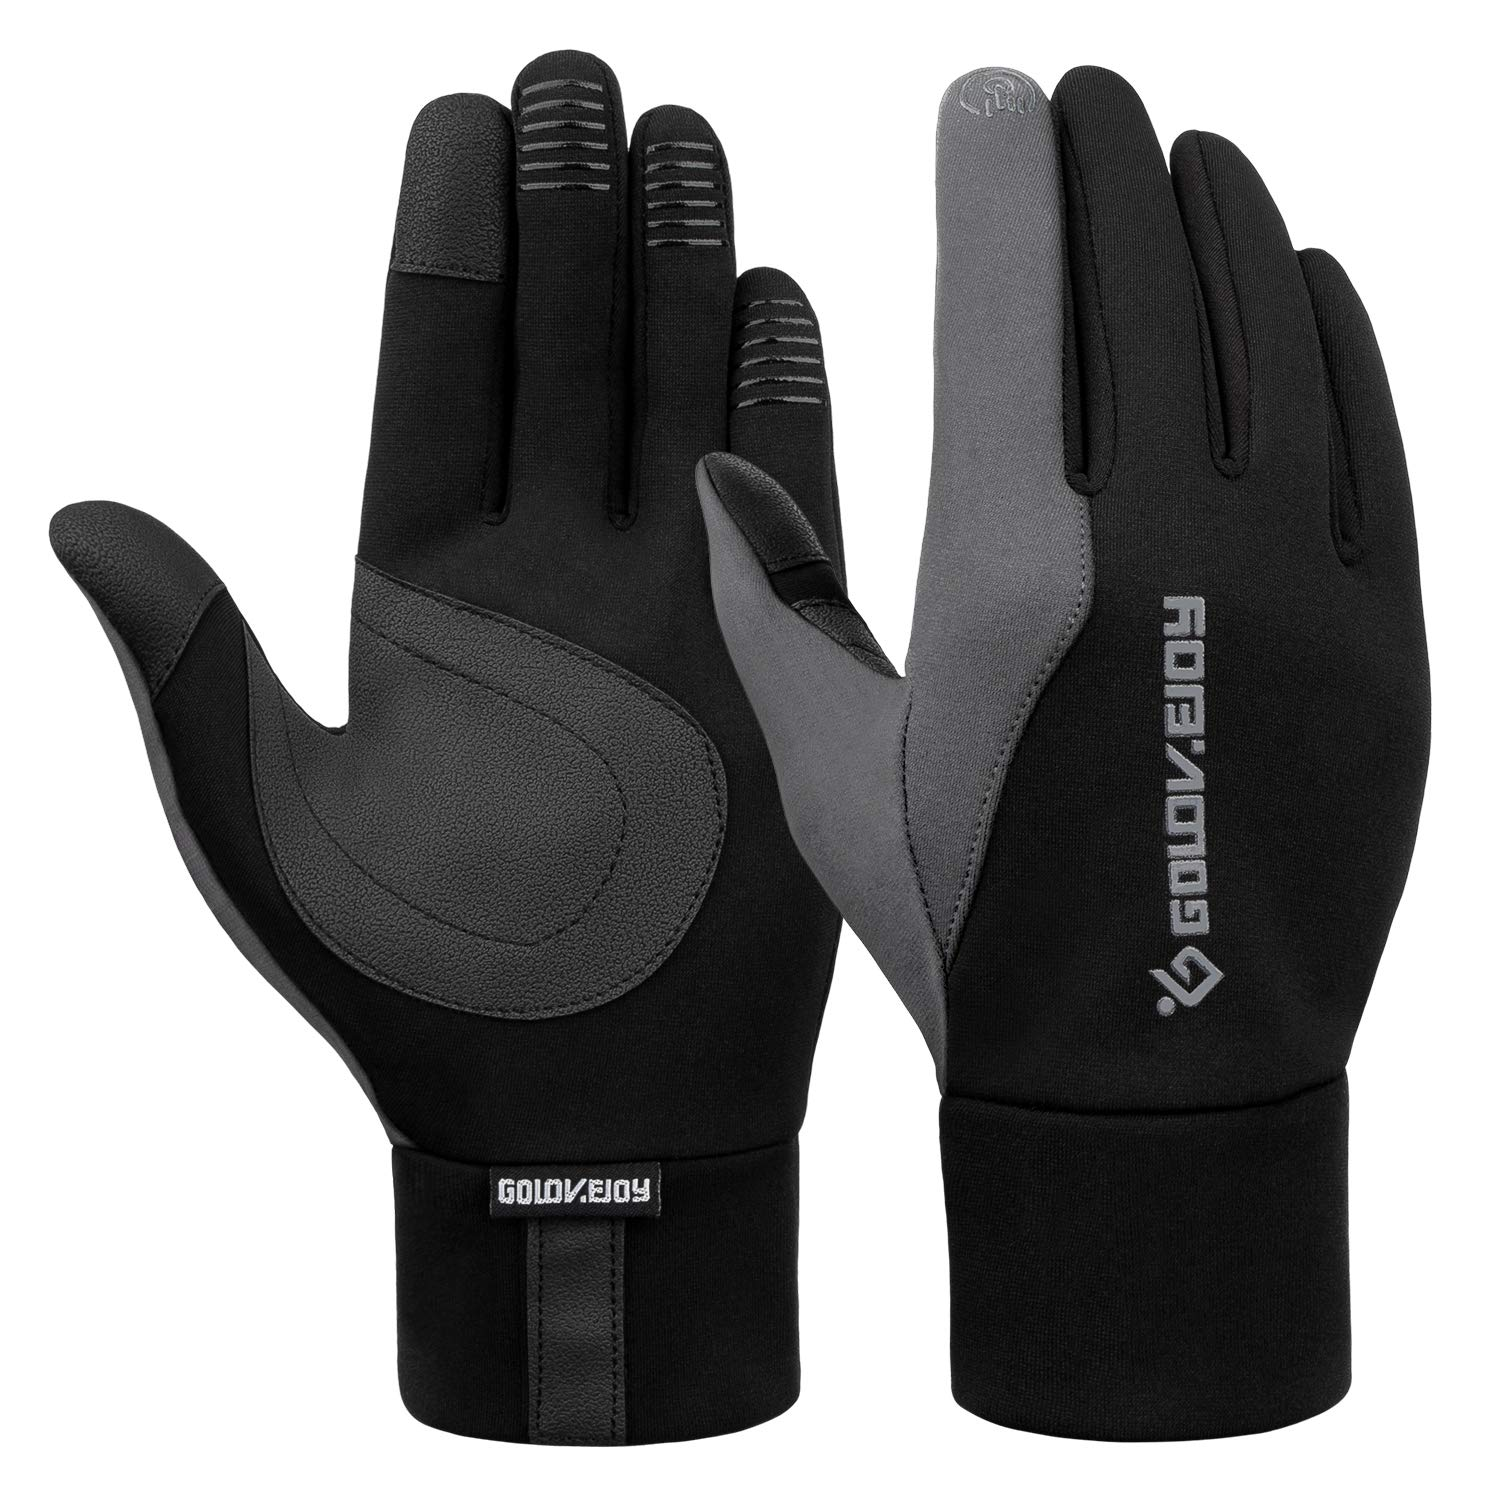 FitsT4 Winter Warm Touchscreen Windproof Gloves Cold Weather Waterproof Non-Slip Glove for Cycling Running Outdoor Activities FitsT4 Sports